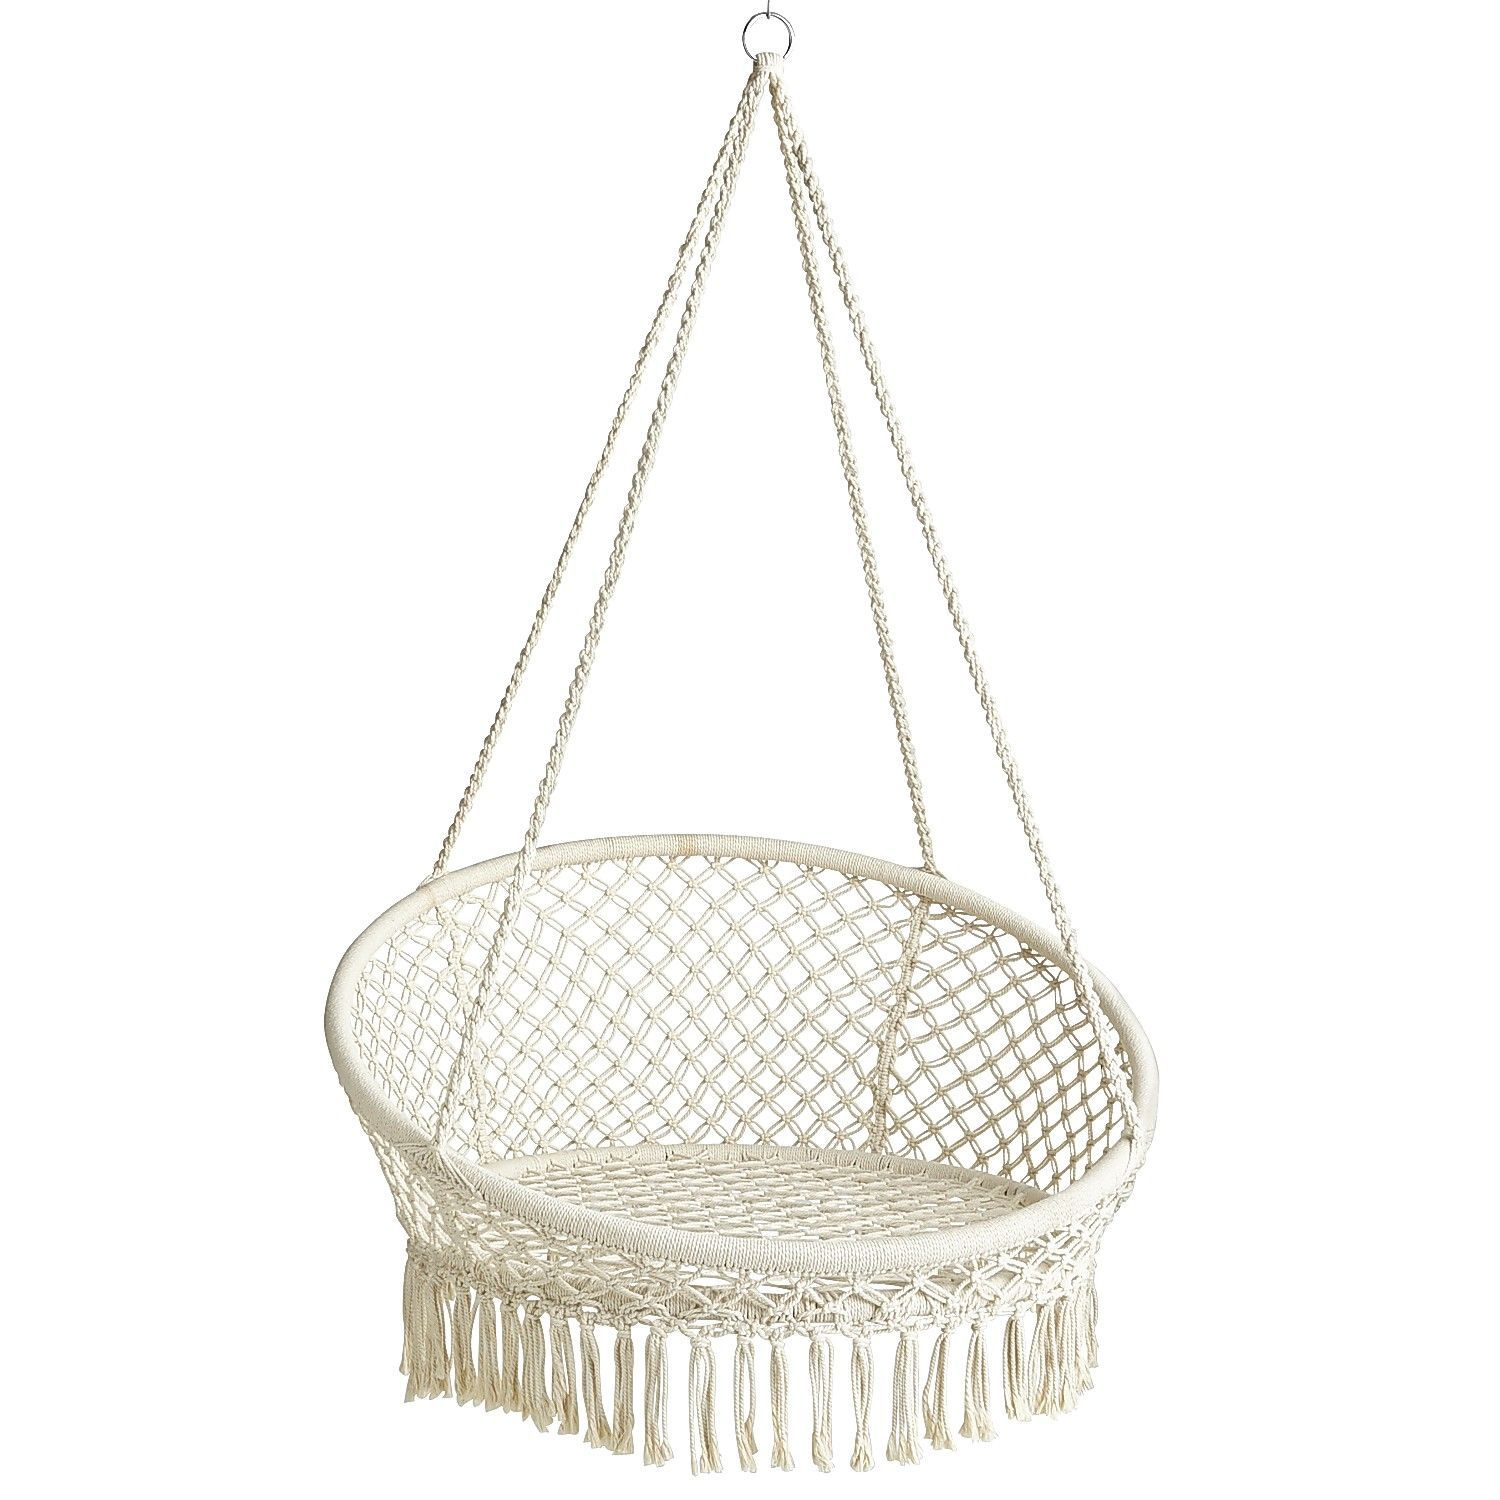 White Macrame Hanging Saucer Chair Wrought Iron